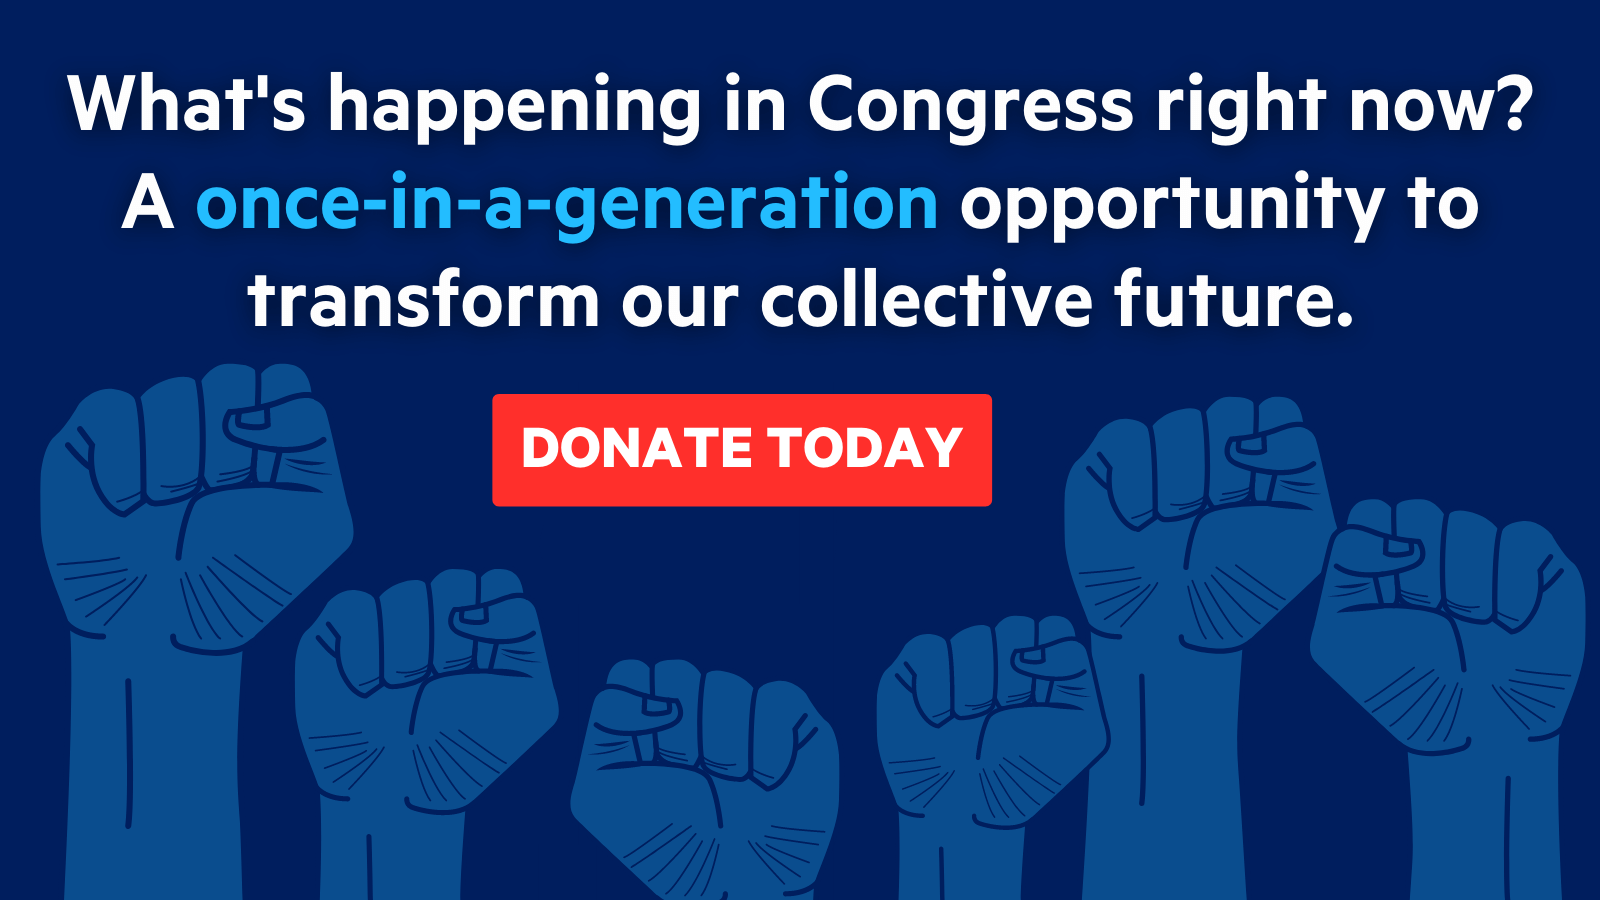 Text at the top reads What's happening in Congress right now? A once-in-a-generation opportunity to transform our collective future. Below is a DONATE TODAY button and an illustration of fists rising up in solidarity.